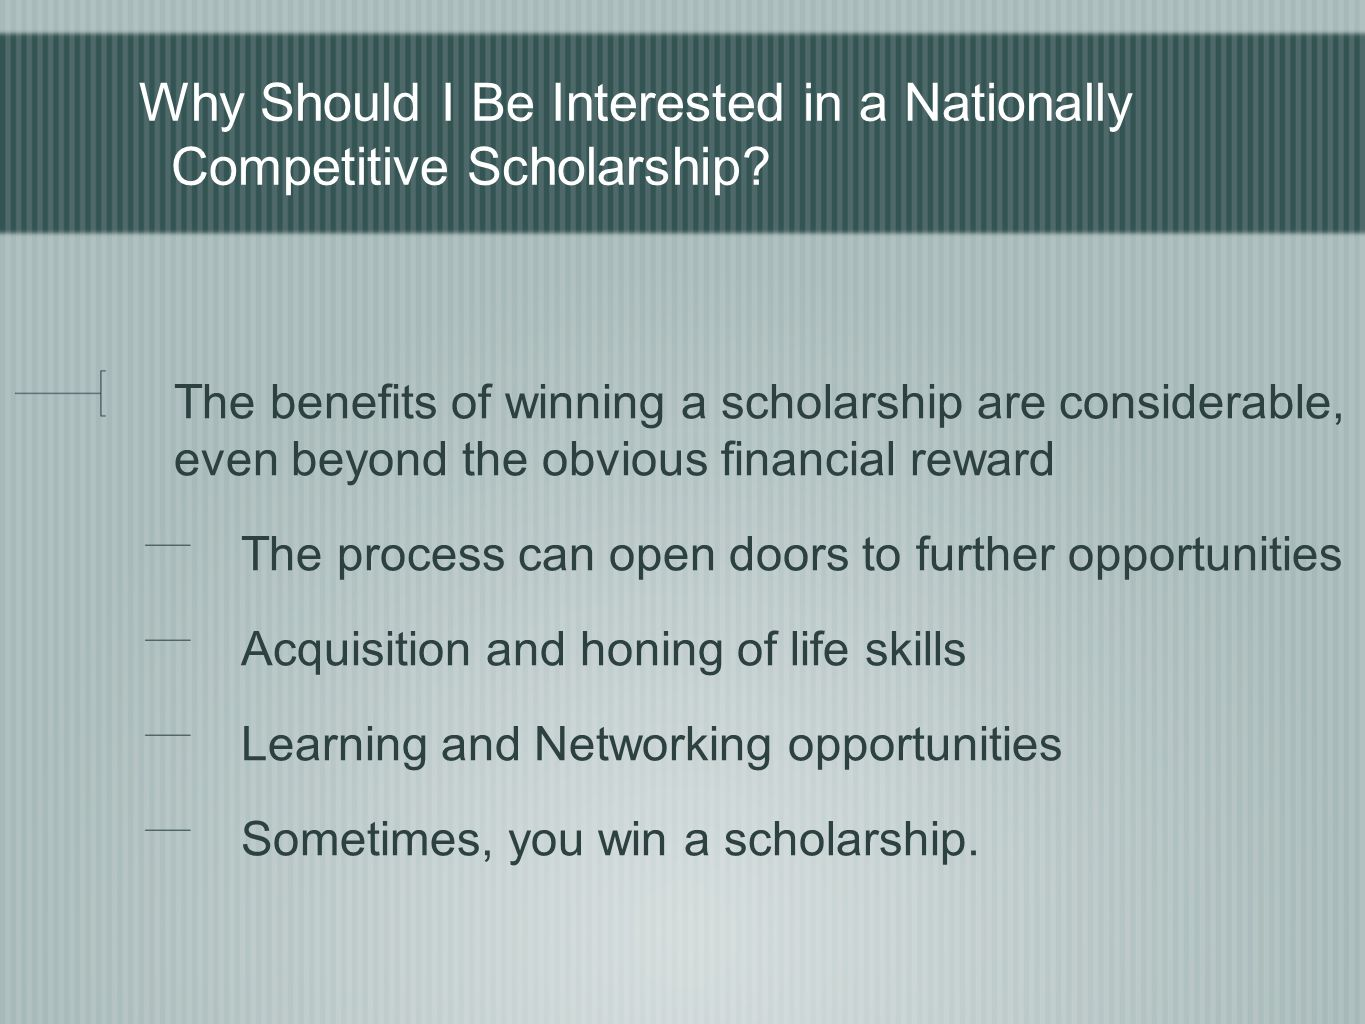 Why Should I Be Interested in a Nationally Competitive Scholarship.